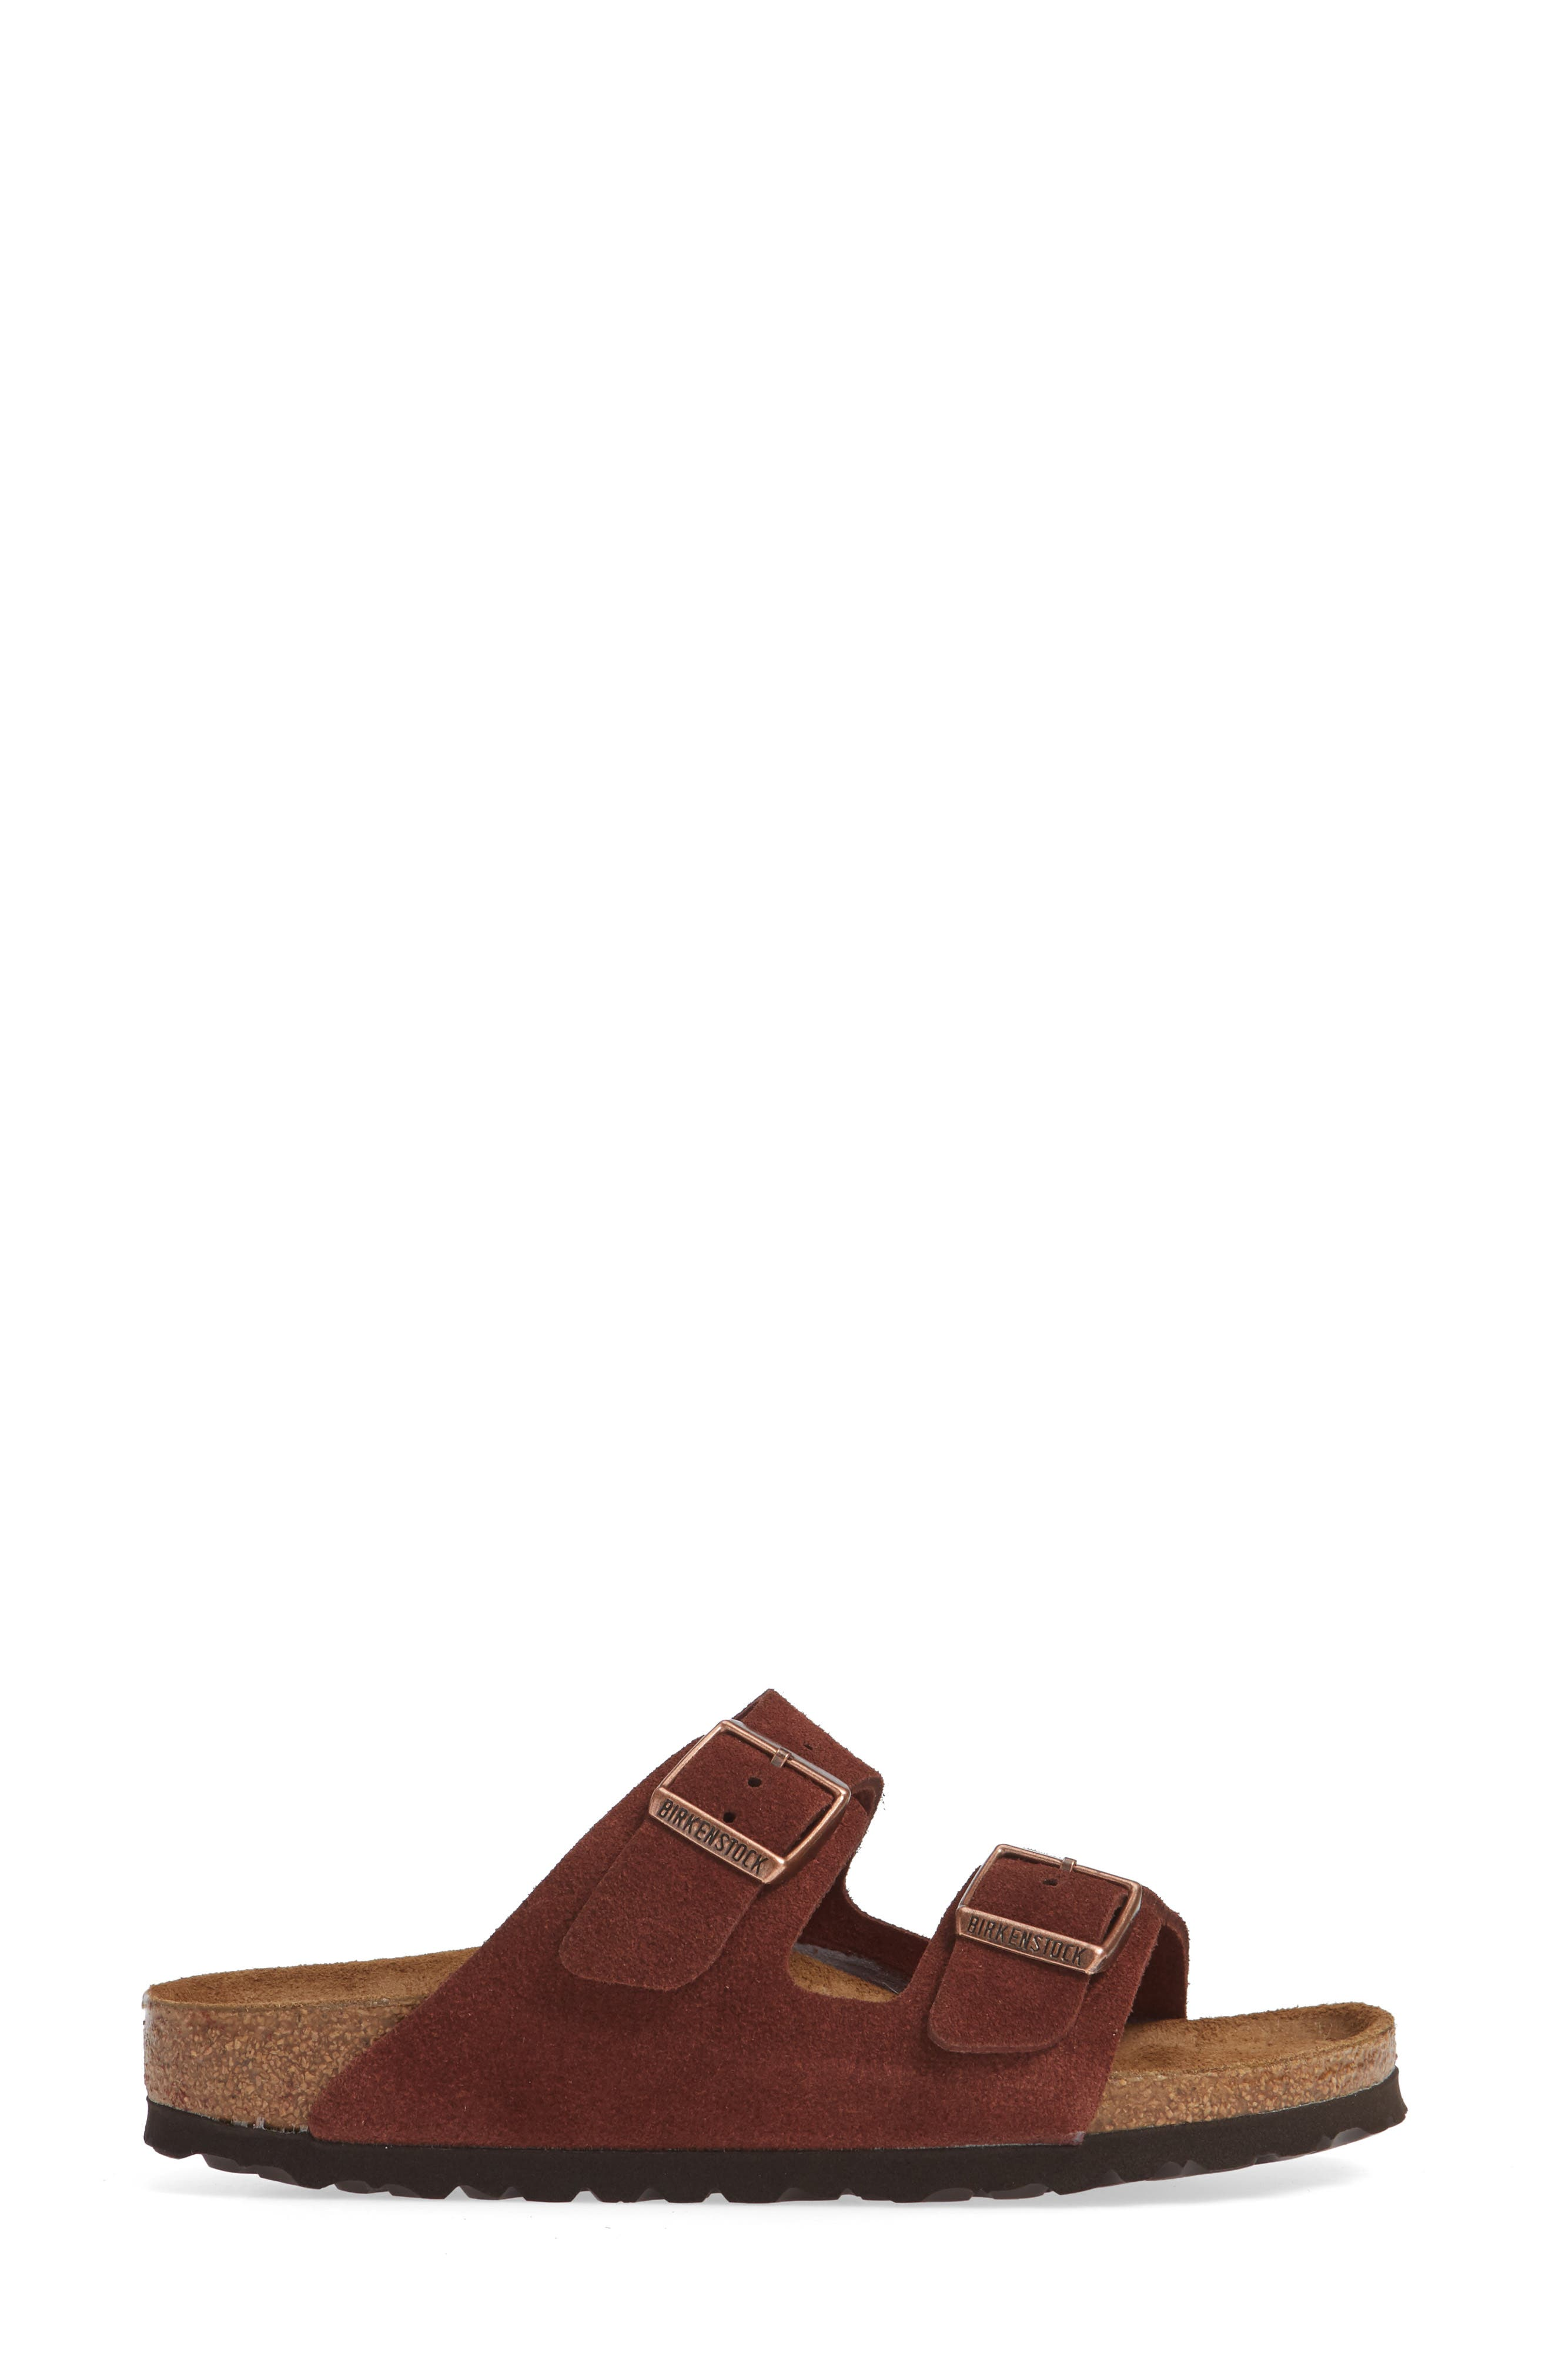 'Arizona' Soft Footbed Suede Sandal,                             Alternate thumbnail 3, color,                             PORT SUEDE